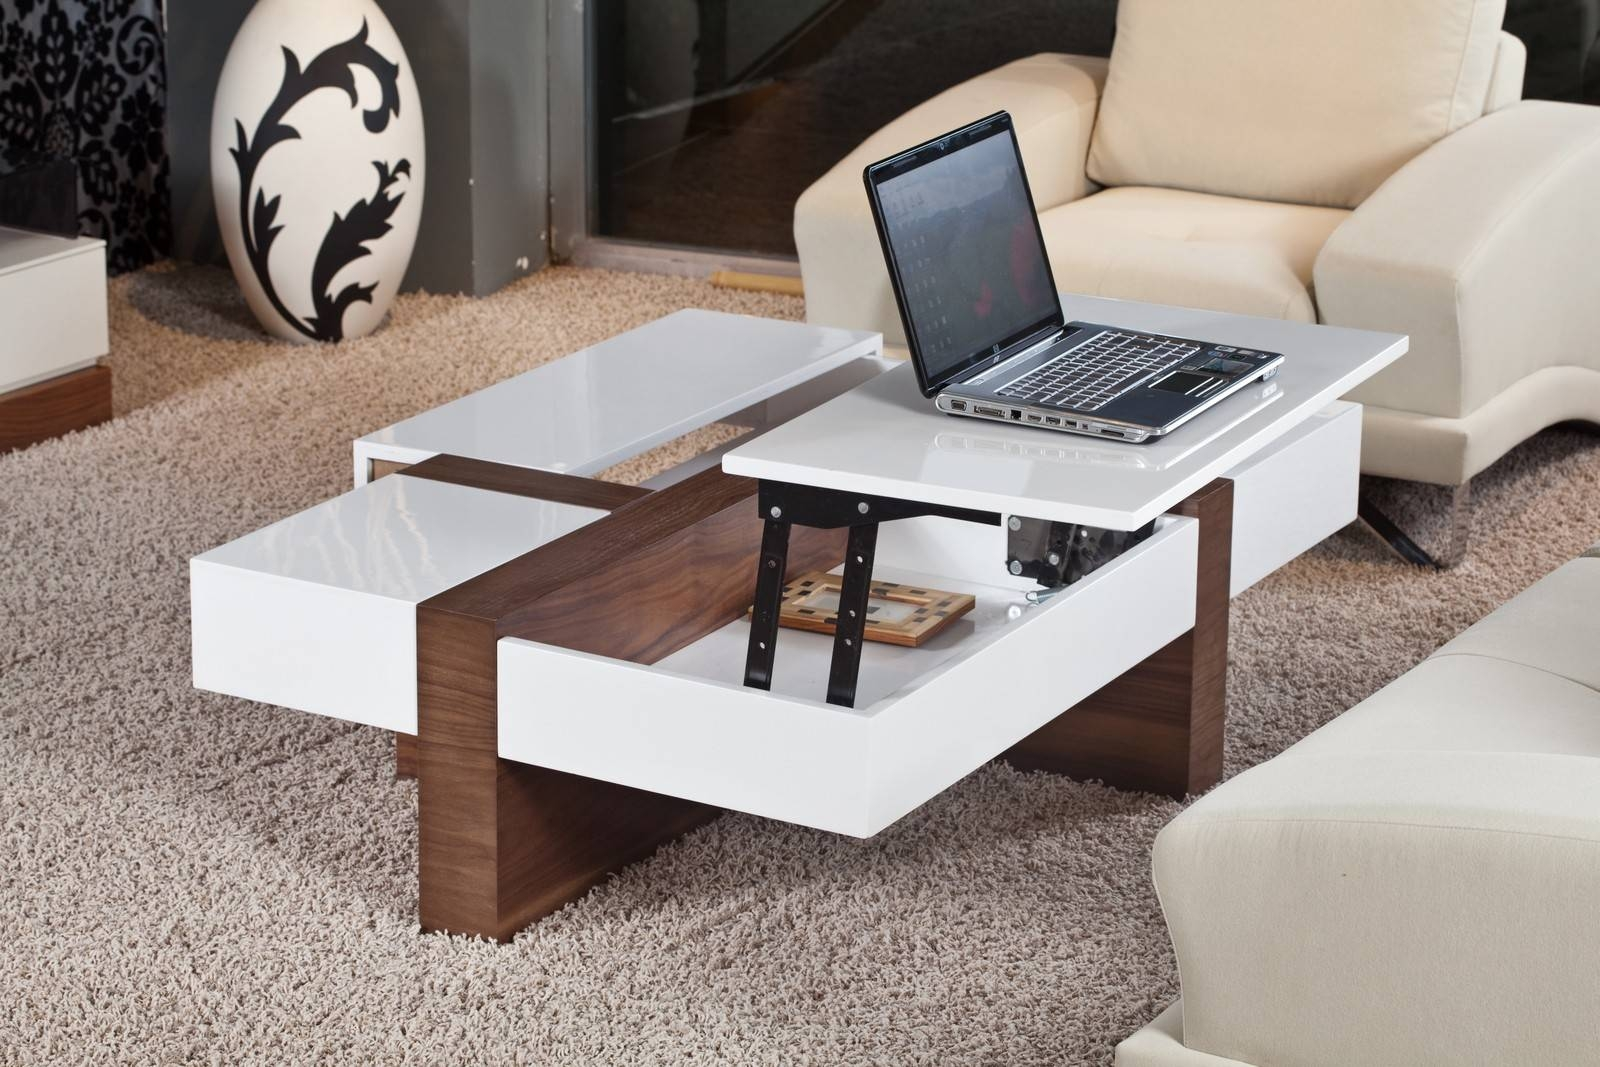 Furniture: Contemporary Coffee Tables For Different Living Room for Contemporary Coffee Tables (Image 9 of 15)